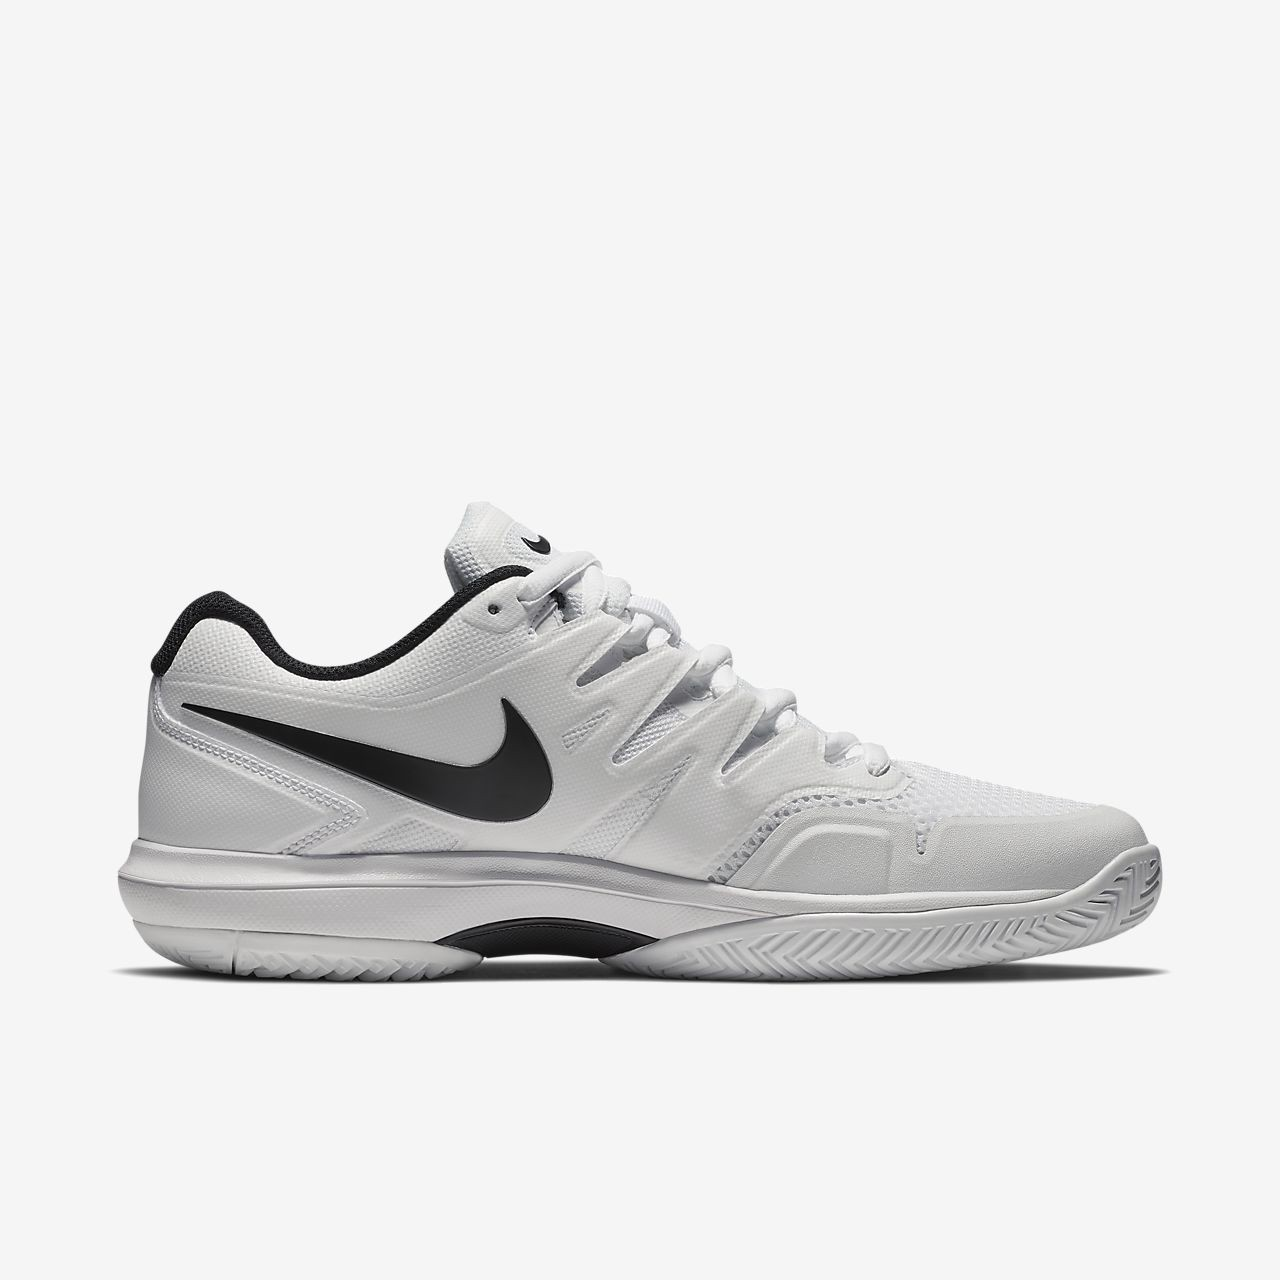 8c7477213ee0 Nike Air Zoom Prestige Hc Men s Tennis Shoe - 7